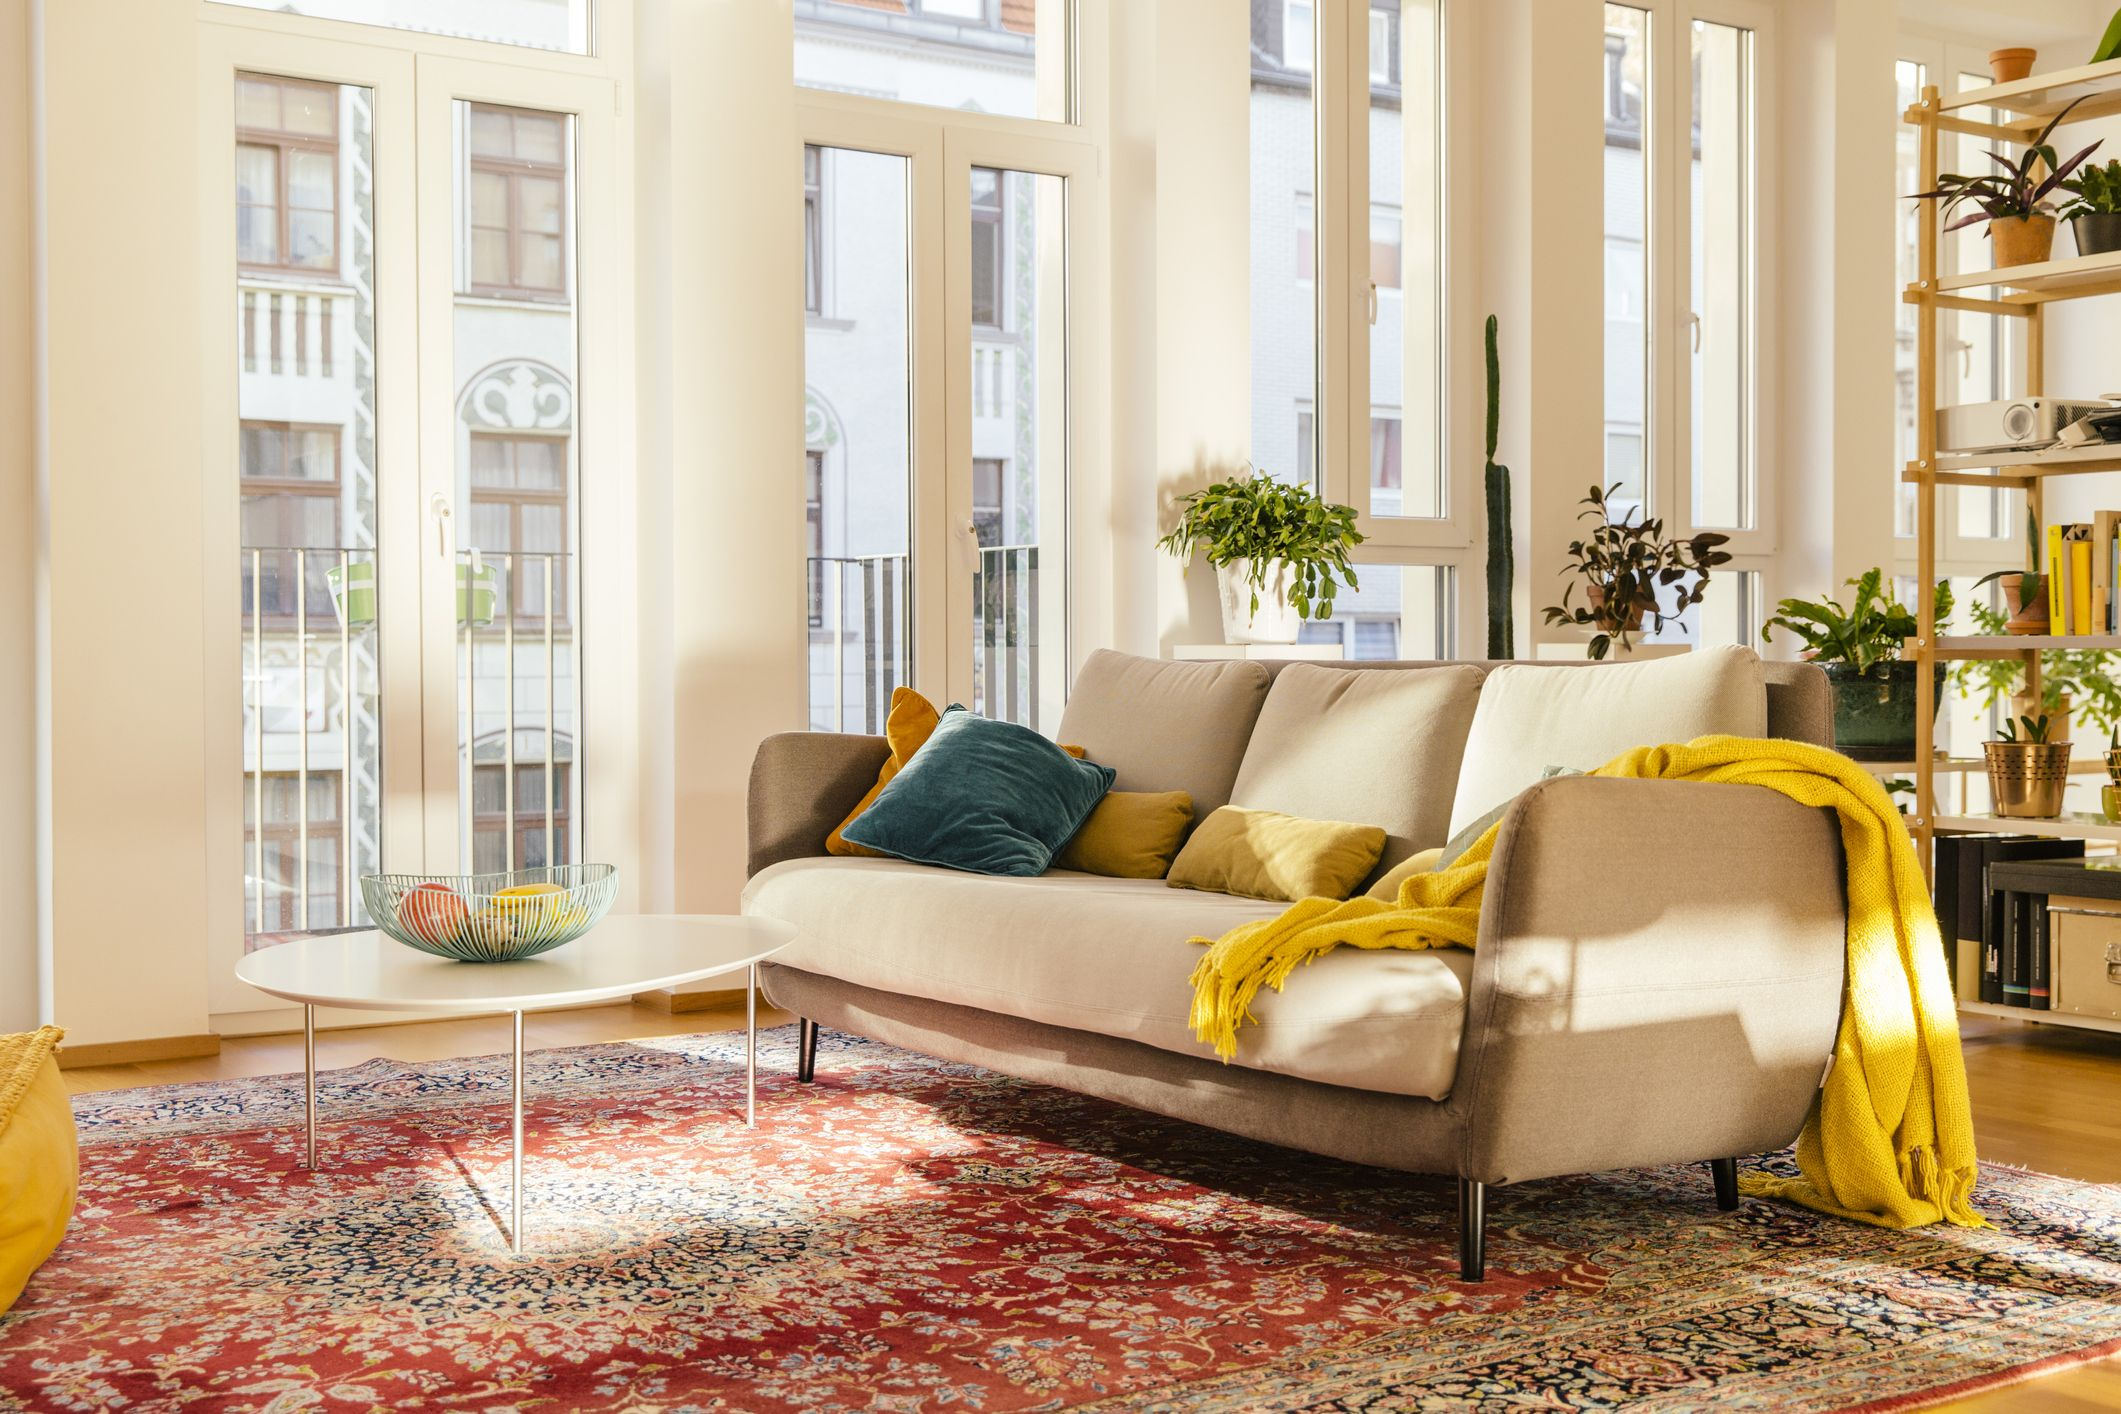 How To Place A Rug In Every Room Of The House Best Placement For Area Rugs